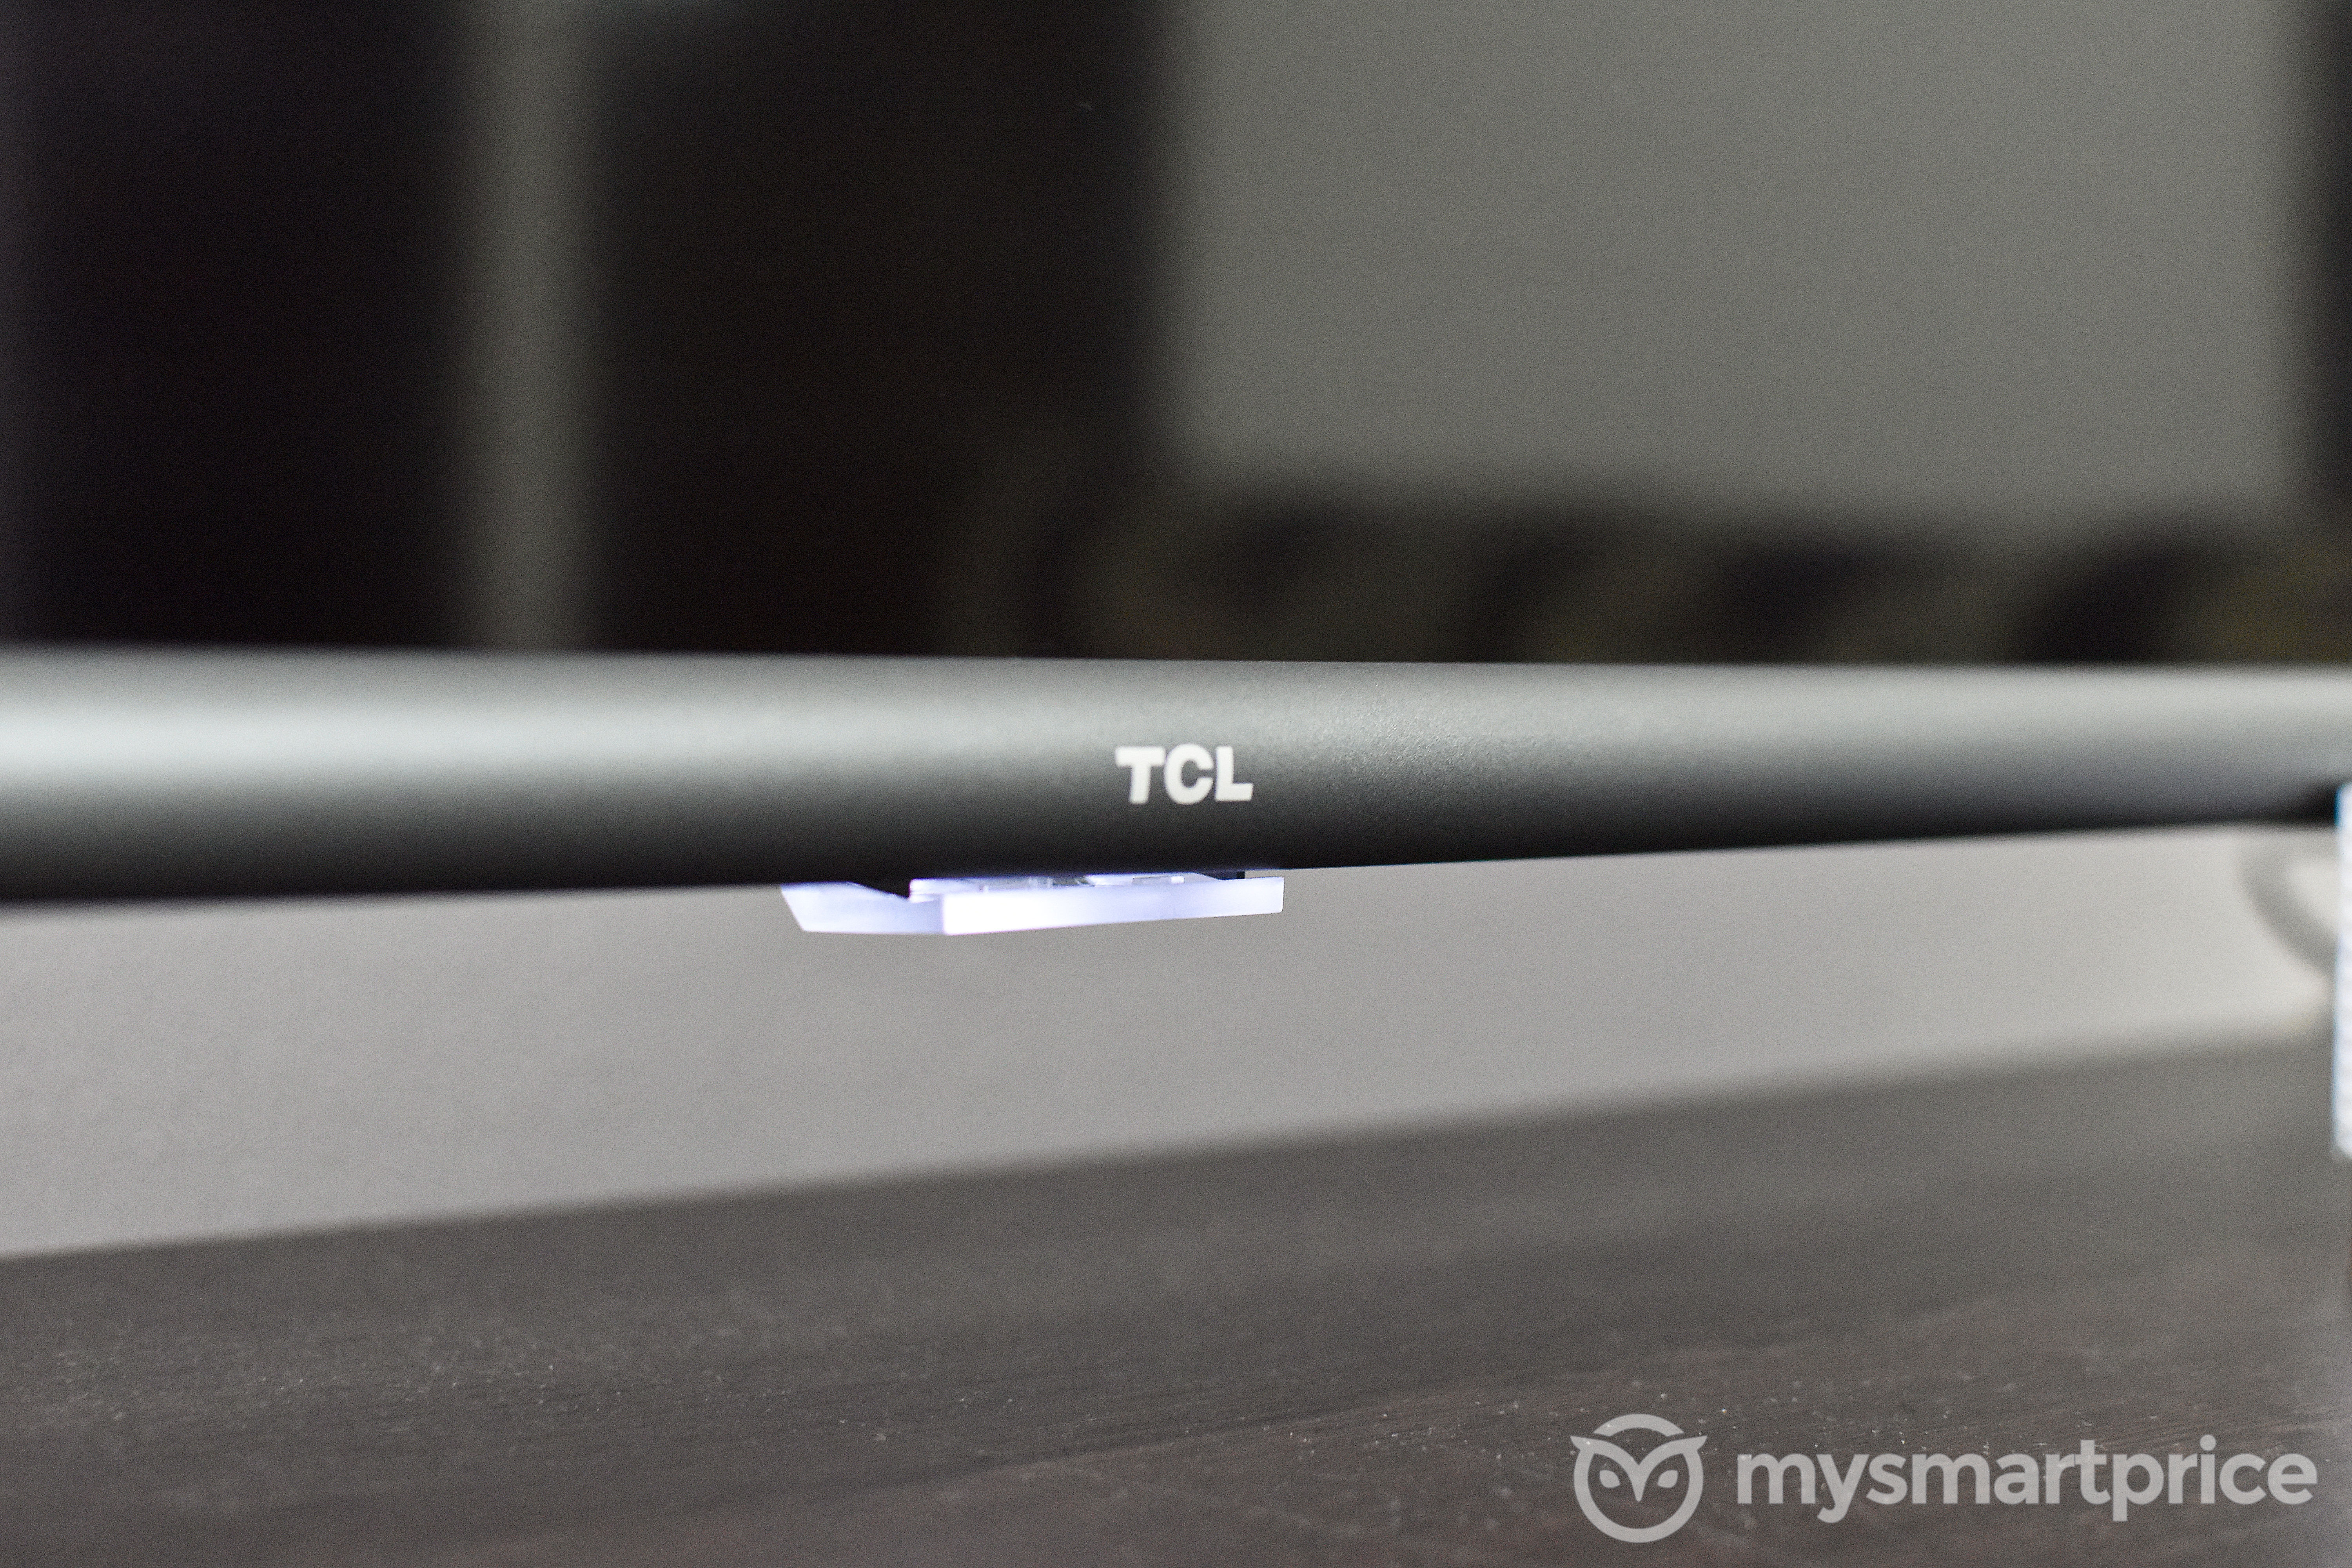 TCL 55P8E Elite Smart TV Review: 4K HDR & Android TV On A Budget -  MySmartPrice